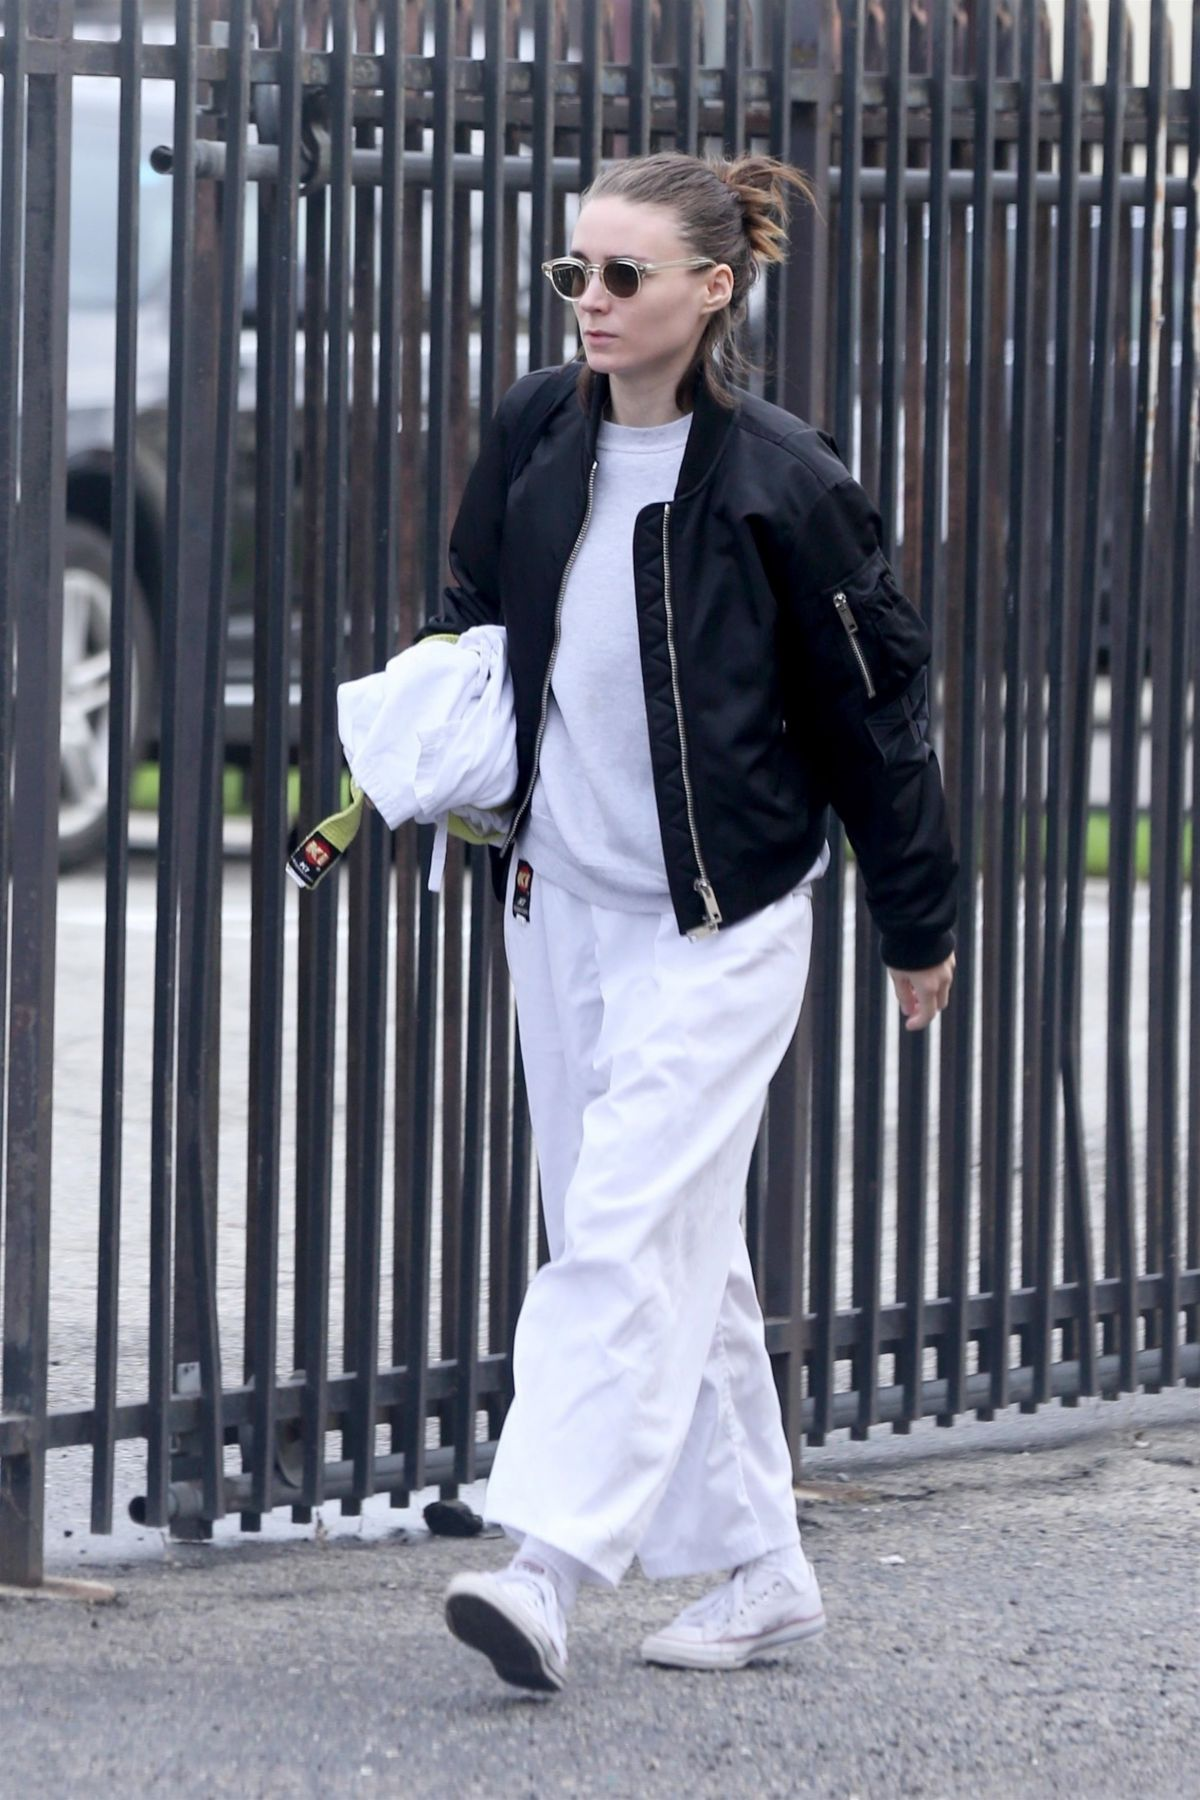 ROONEY MARA Arrives at Karate Class in Beverly Hills 01/18/2019